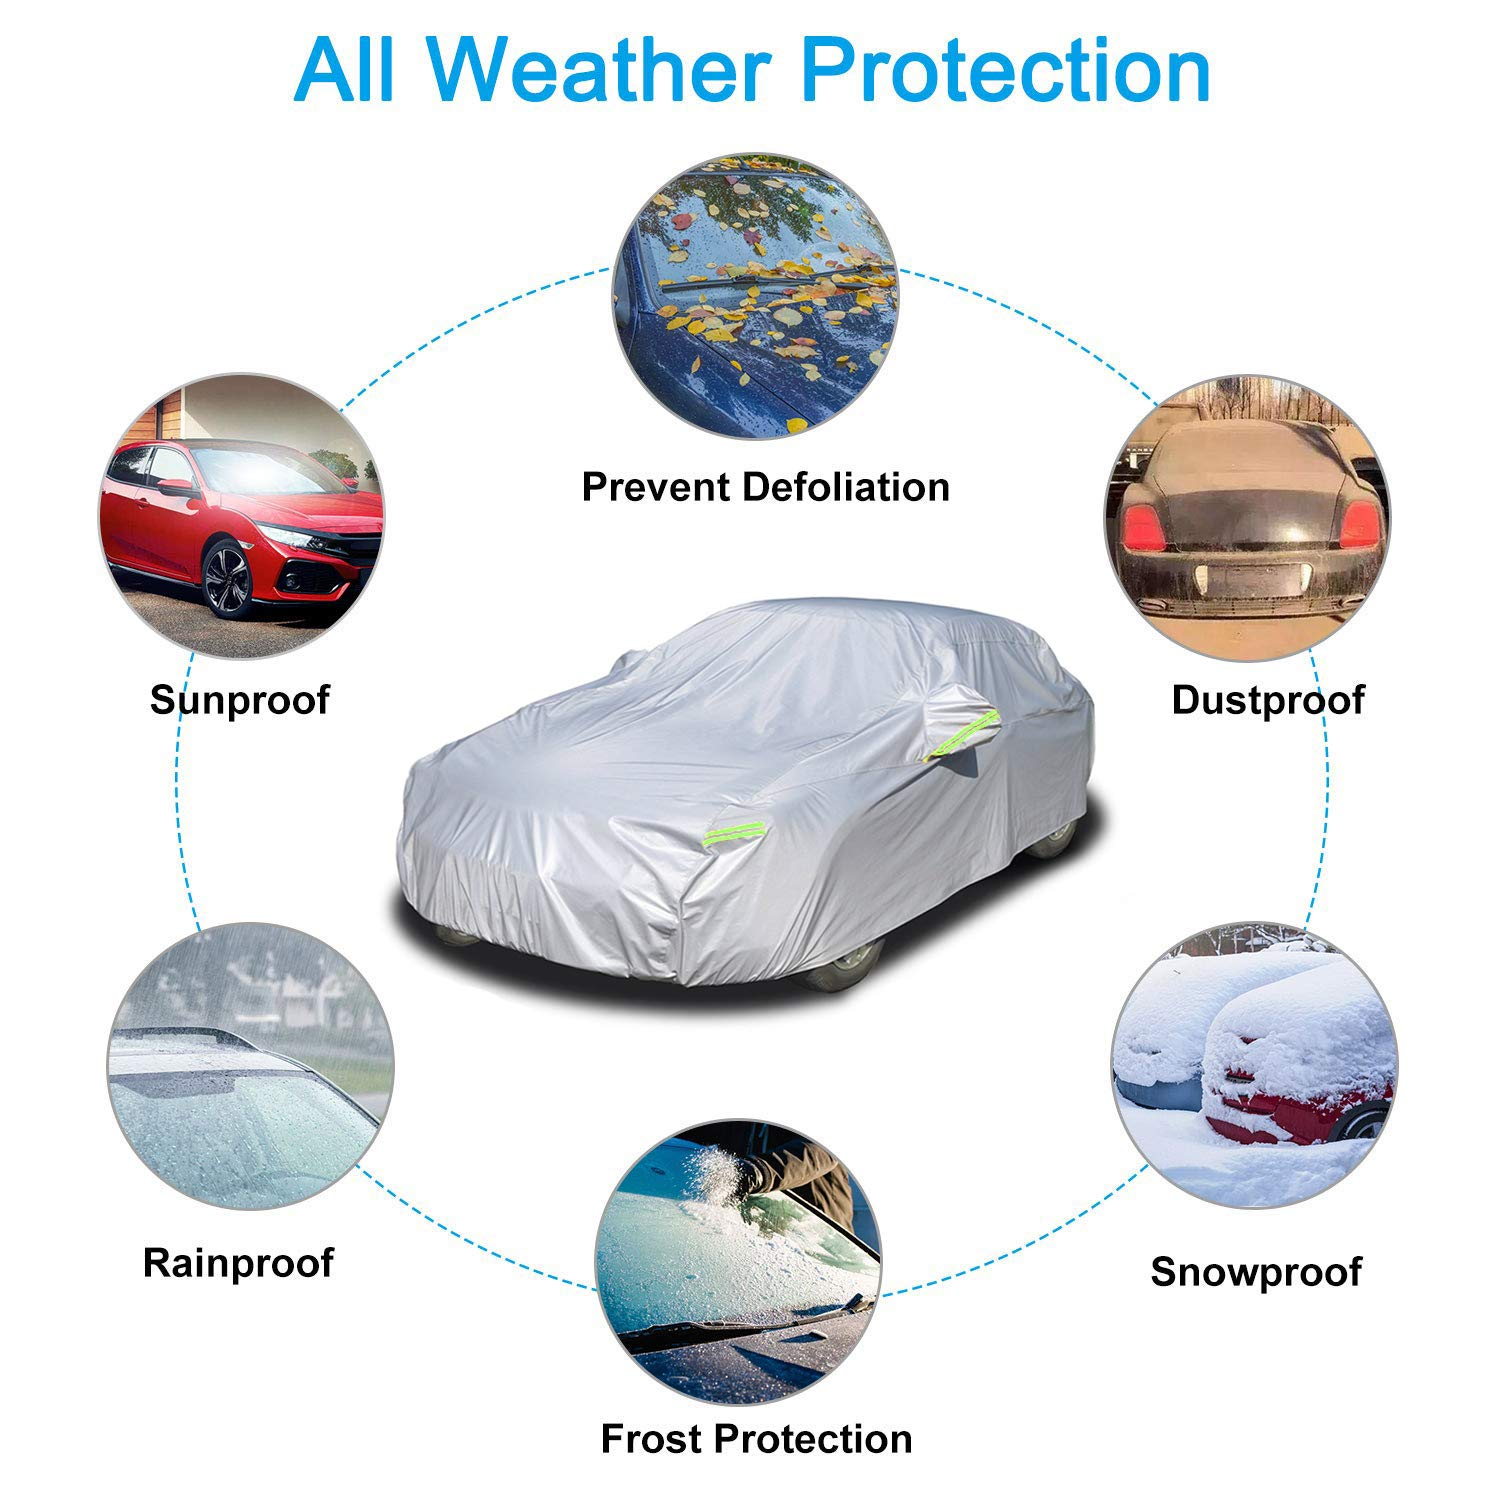 BMZX Car Cover for Model 3 Dustproof Effectively Reduce Temperature Universal UV Waterproof Full Car Cover Outdoor Auto Sun Protection Covers Waterproof Snowproof All Weather